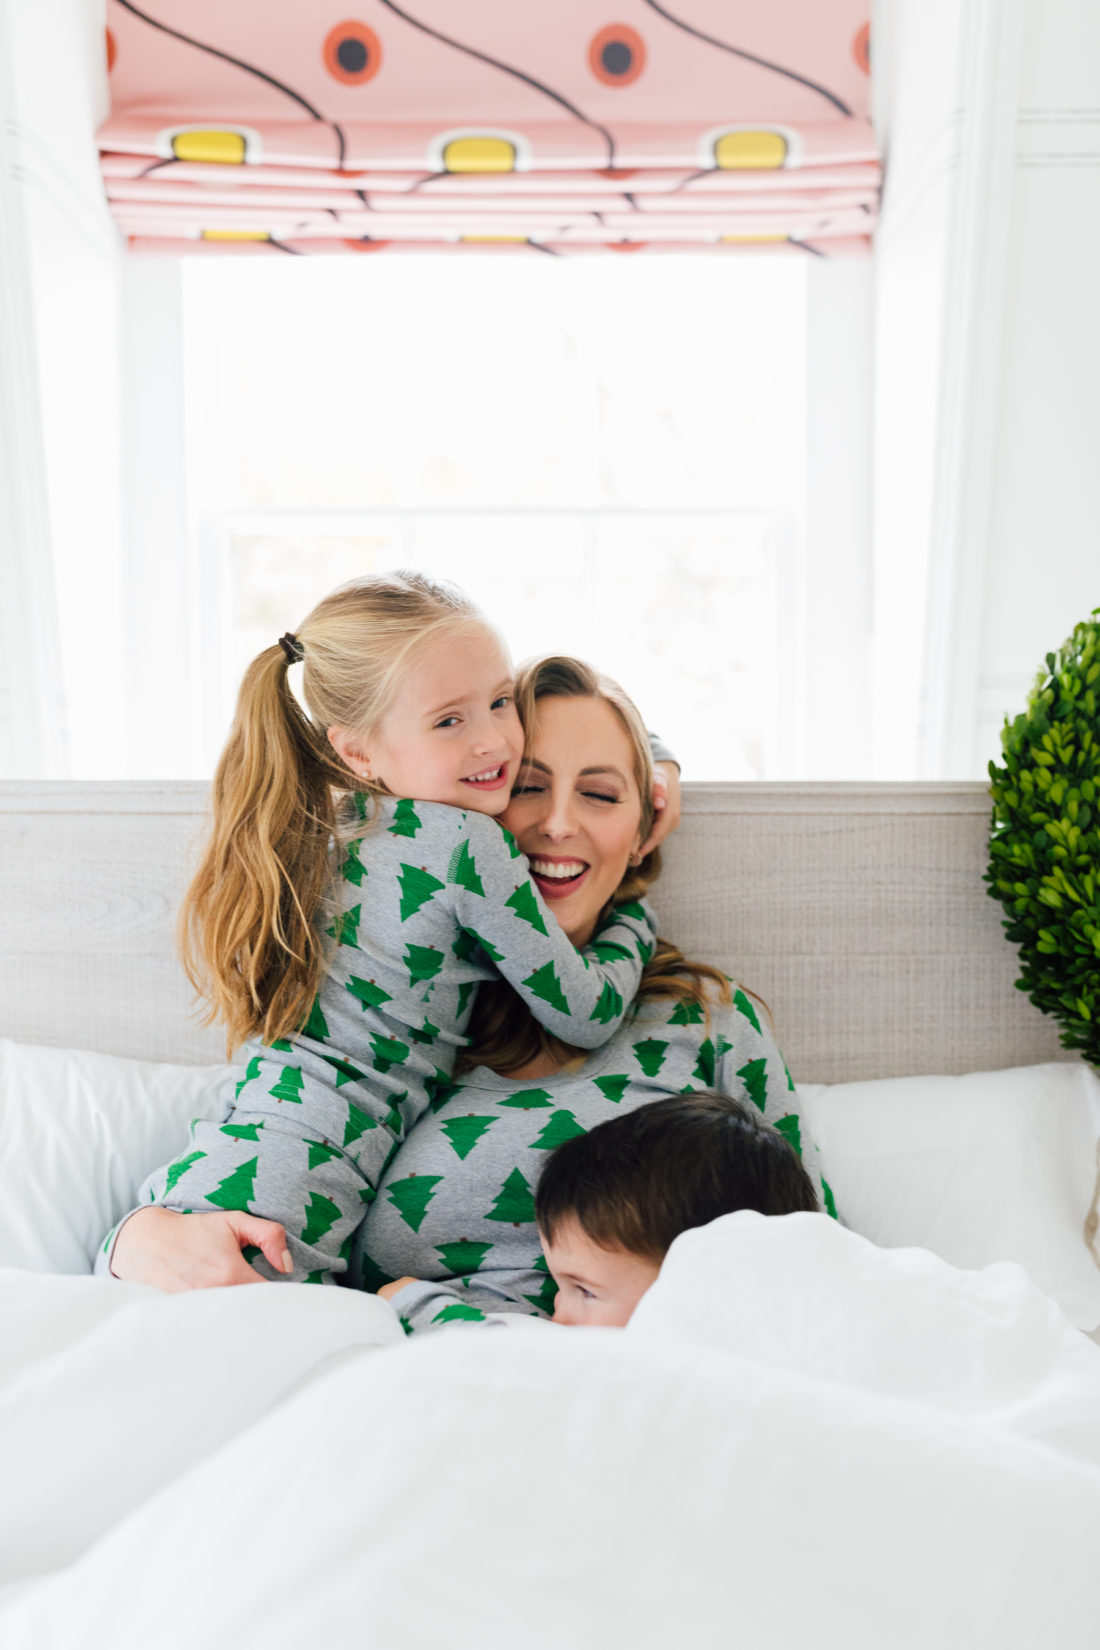 Eva Amurri Martino cuddles with her kids in bed wearing matching holiday pajamas